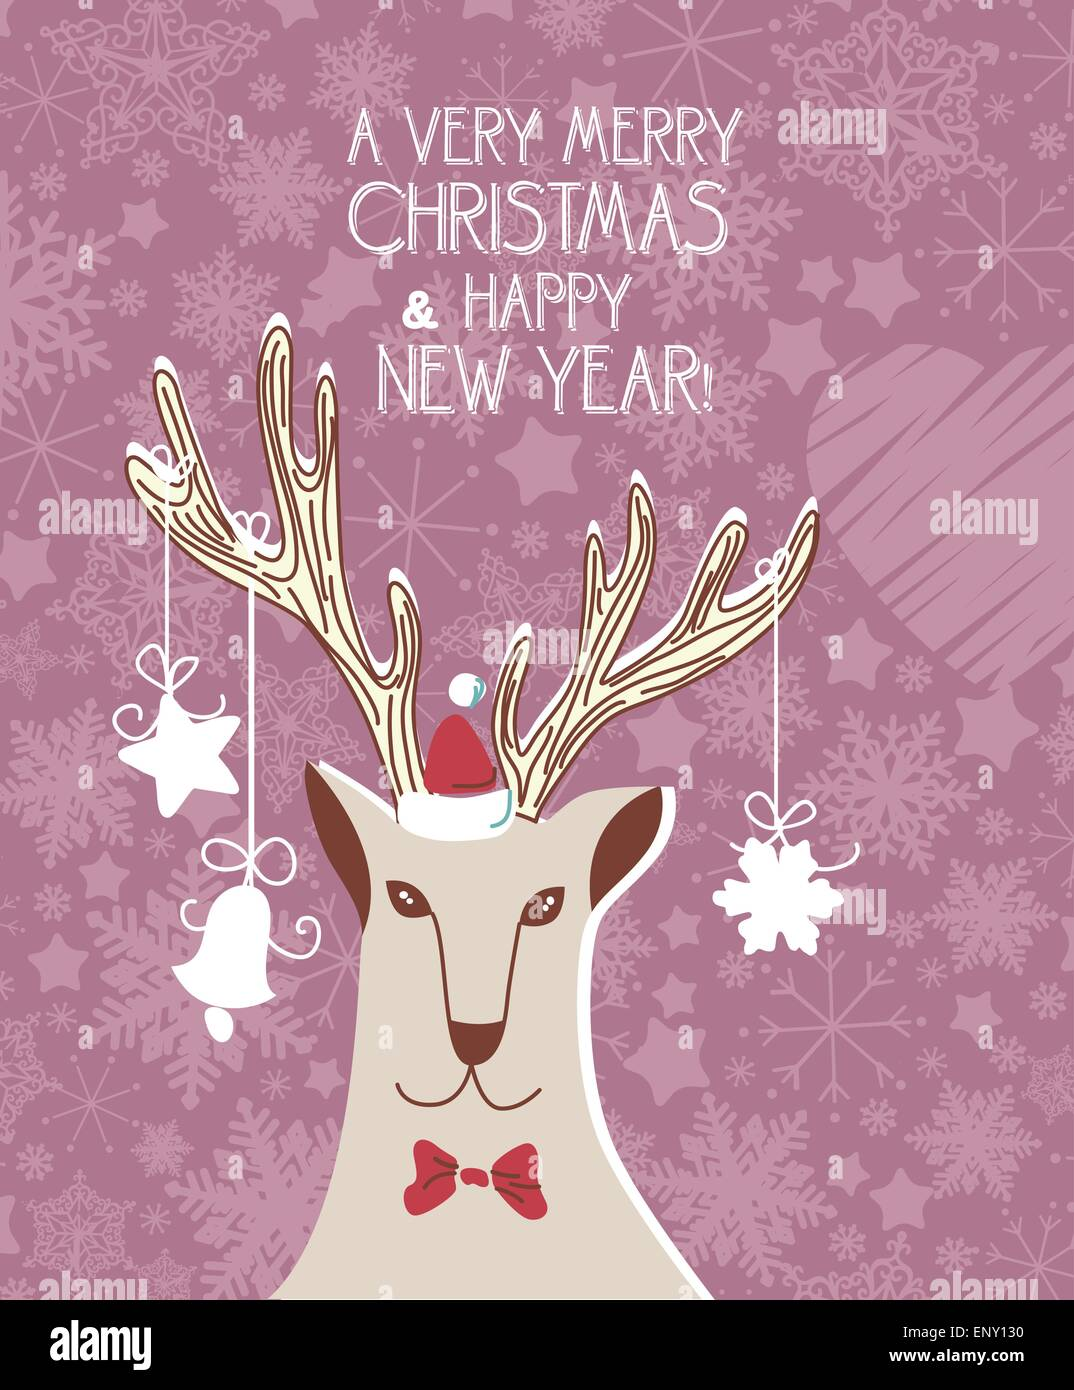 Vintage christmas card with hipster deer and snowflakes. Poster ...